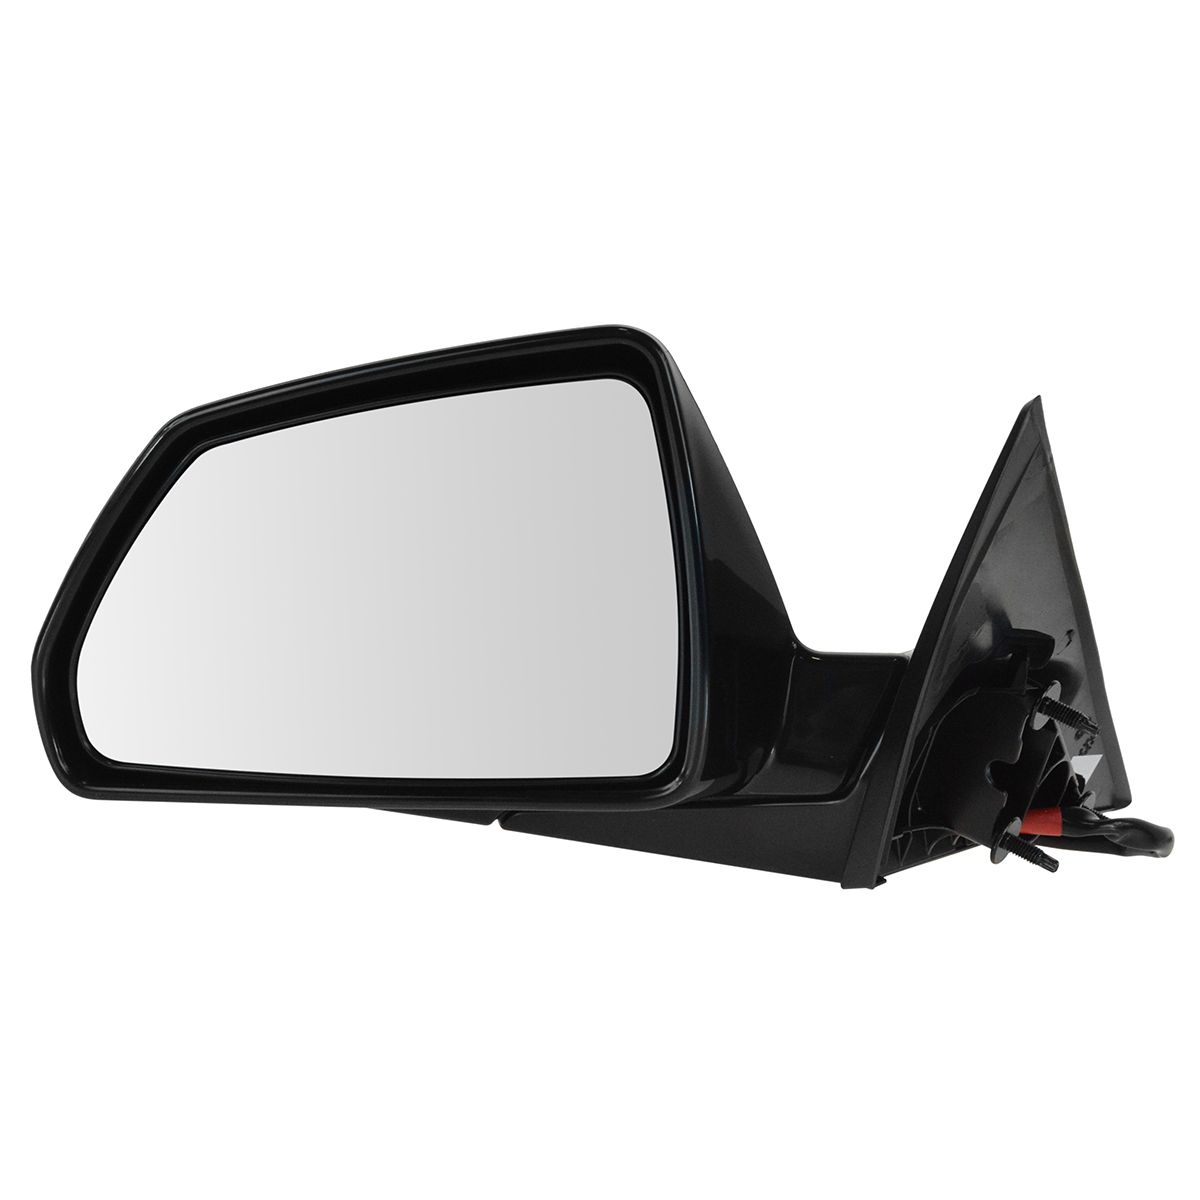 Power Mirror For 2011-14 Cadillac CTS Coupe Left Manual Folding Heated Paintable